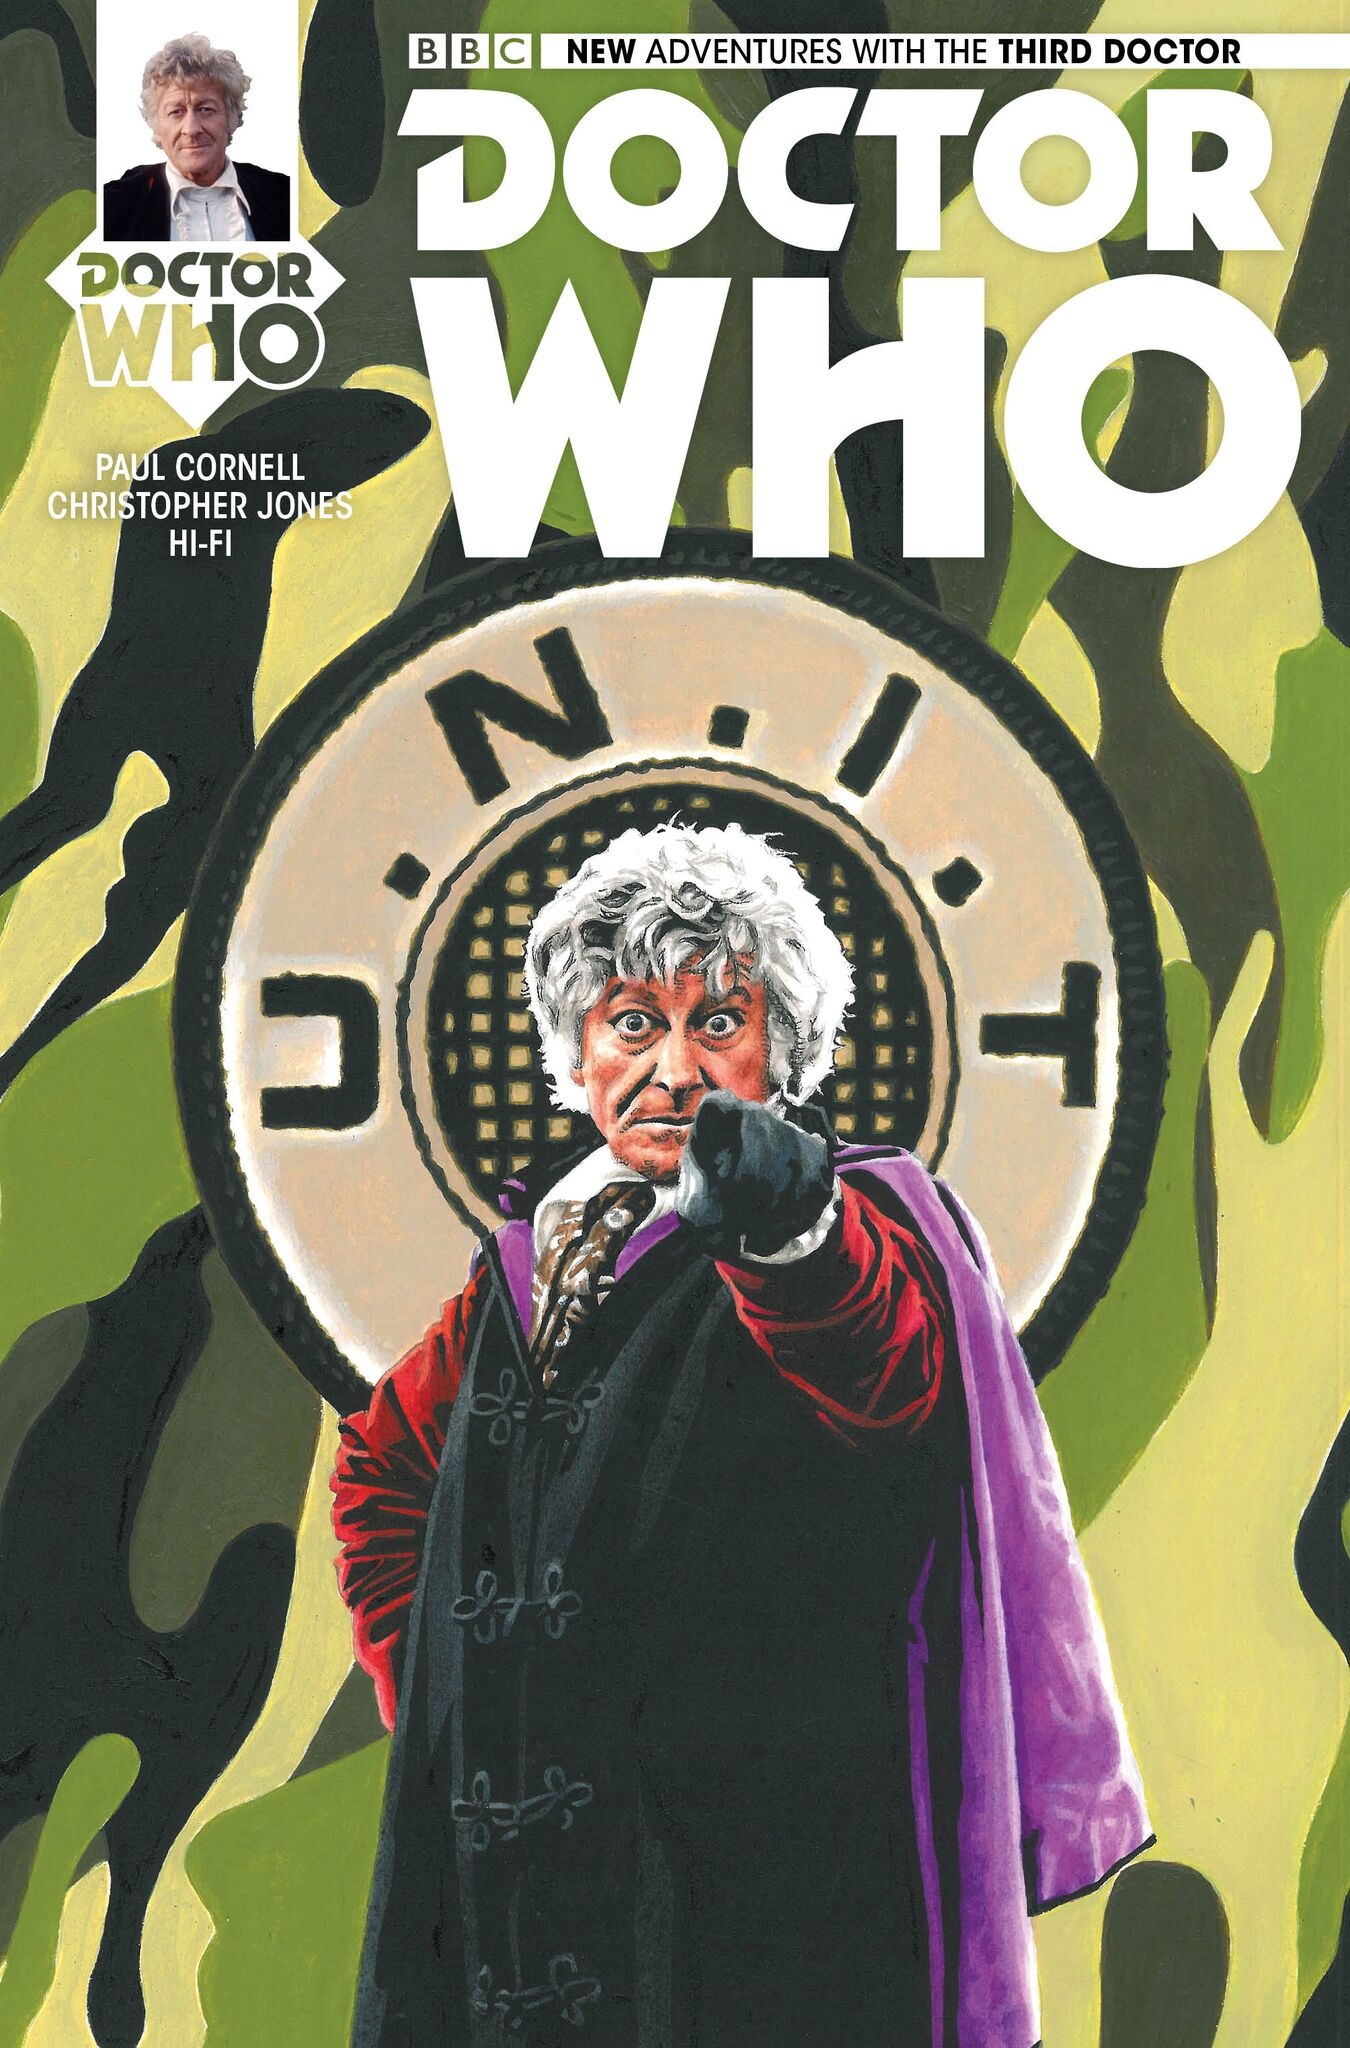 Third Doctor #1 (Titan) Diamond UK variant: Andy Walker